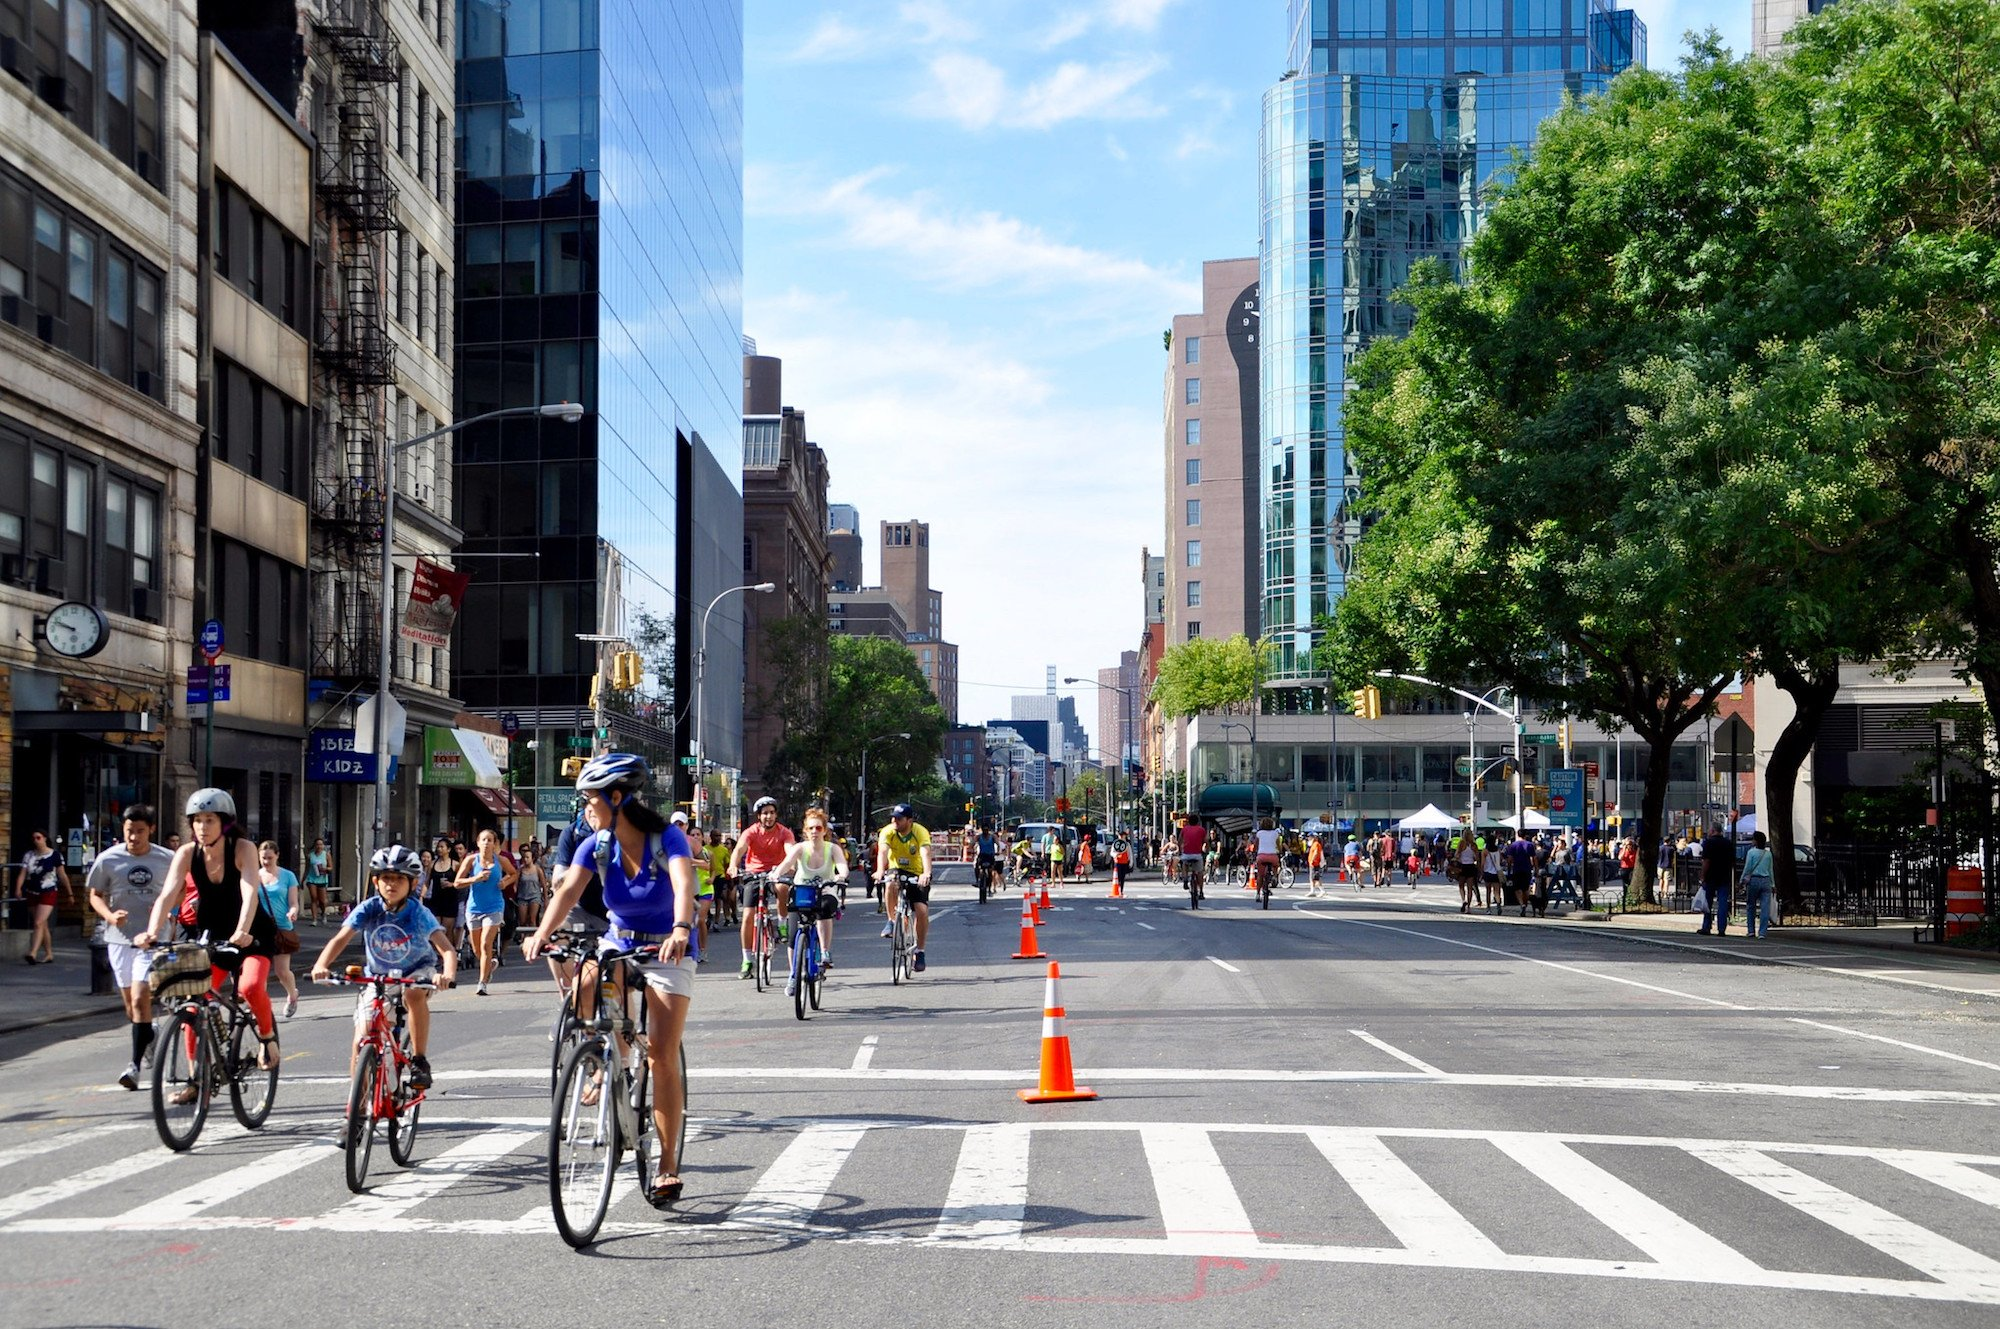 NYC Open Streets - Big City Living Is Getting better